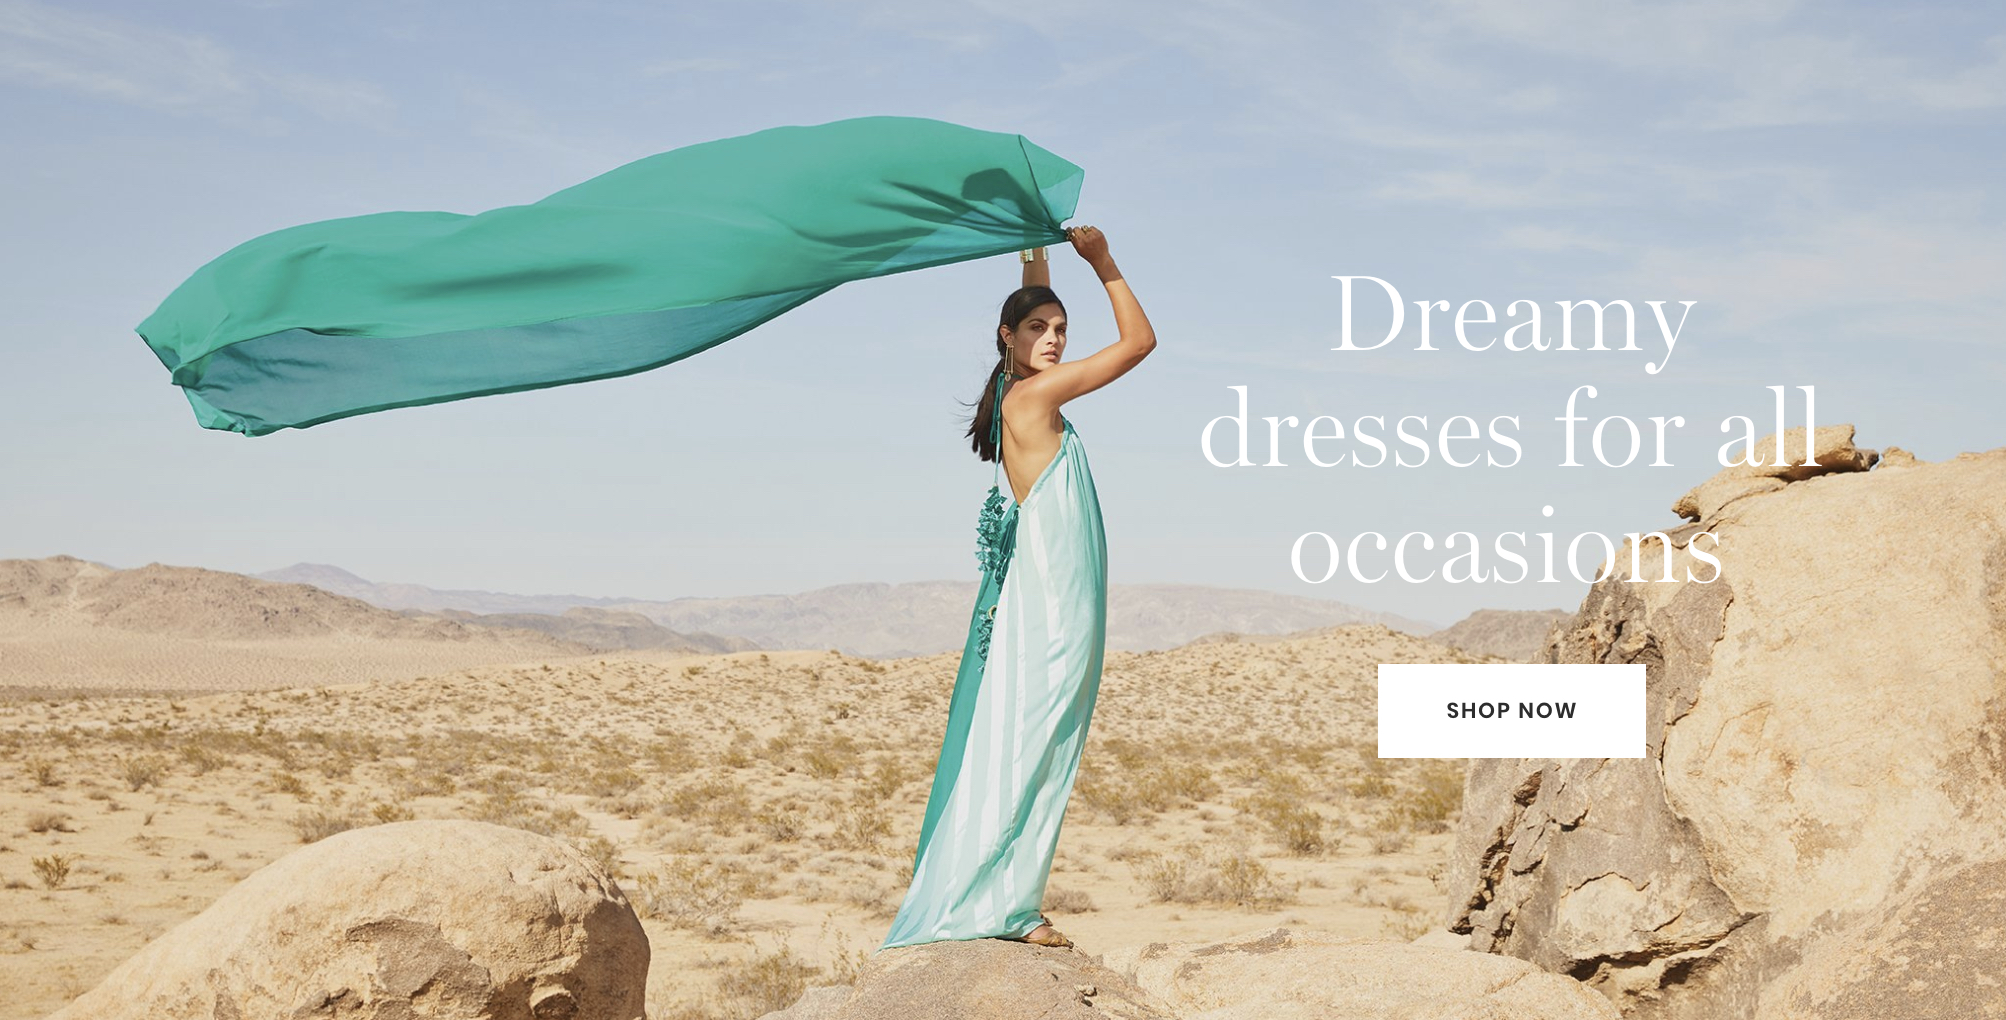 shop dreamy dresses now